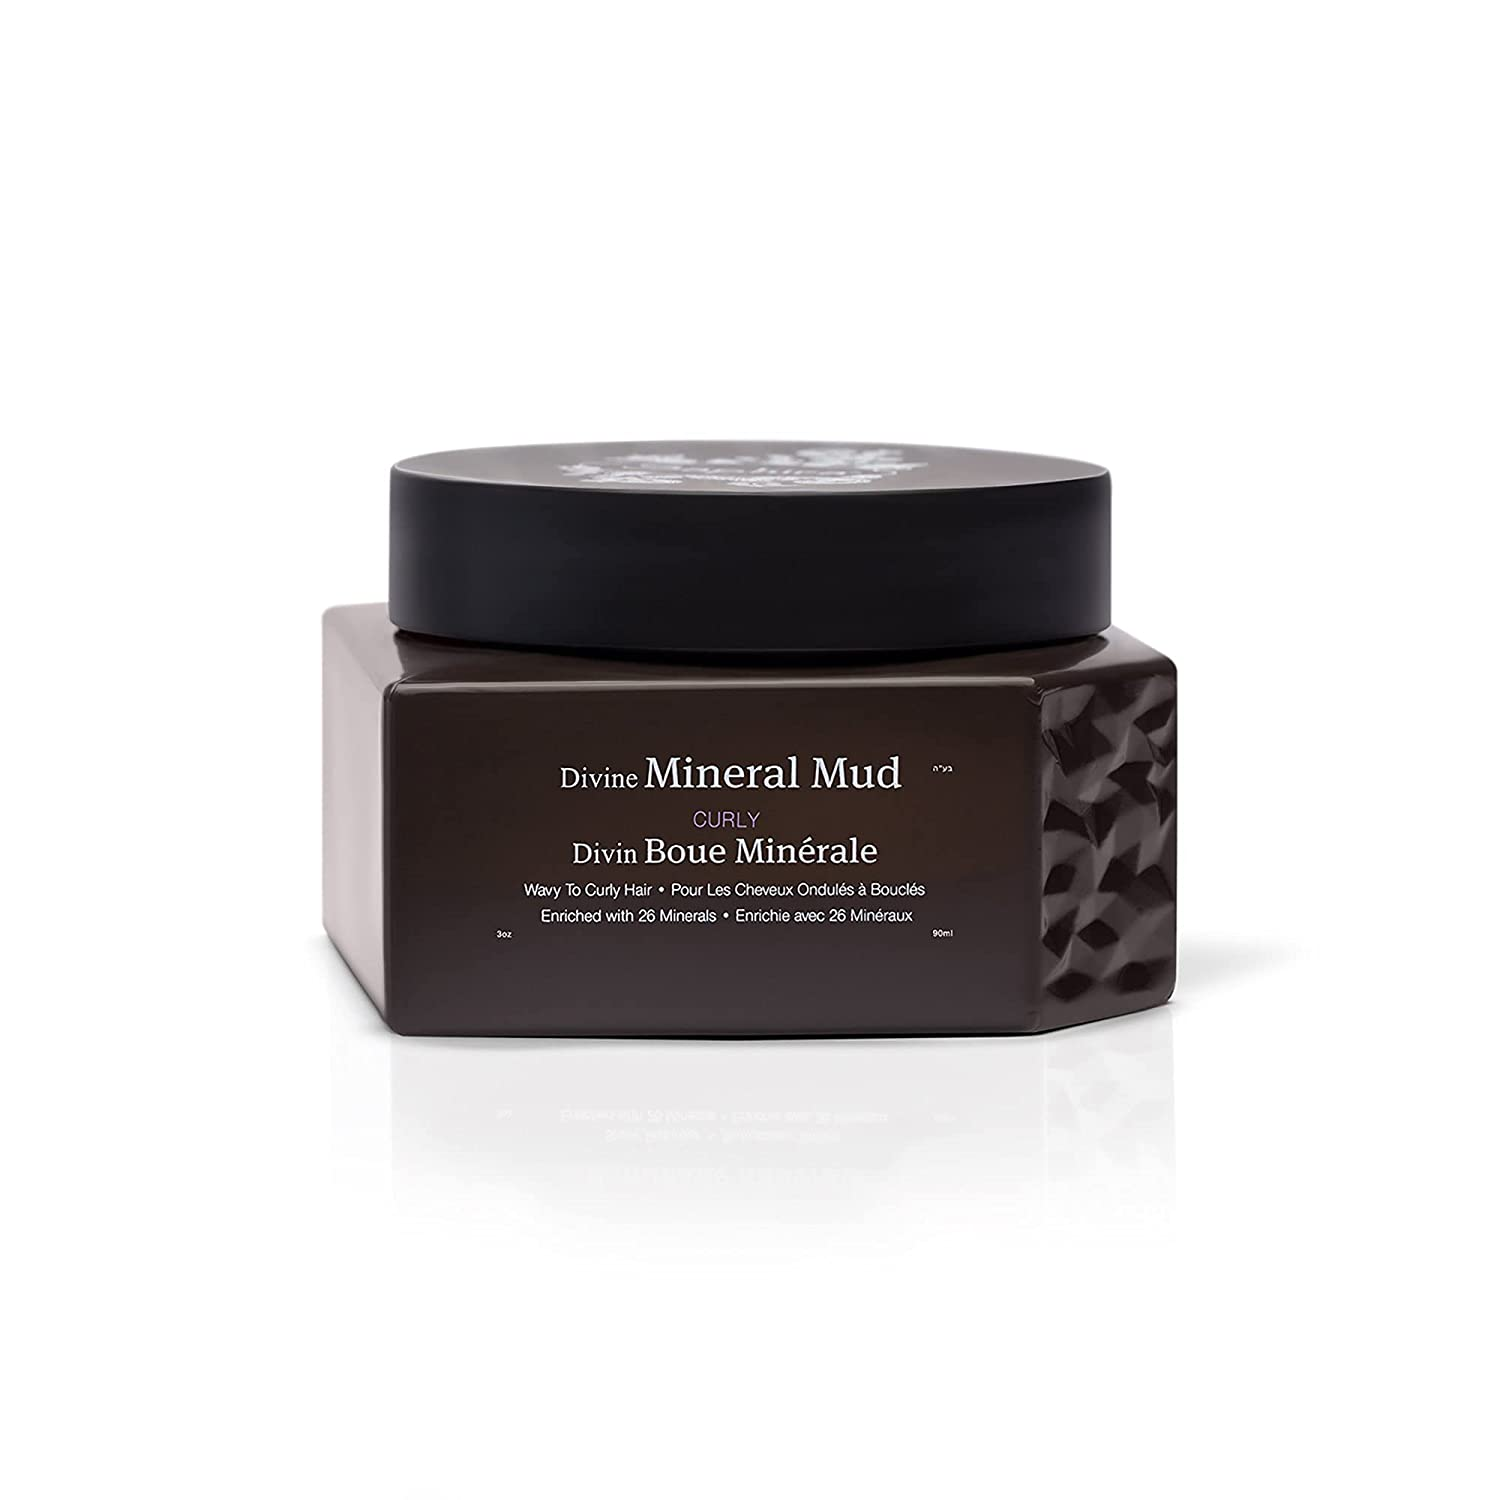 SAPHIRA Divine Mineral Mud for Curly and Wavy Hair, 3 oz: Premium Beauty